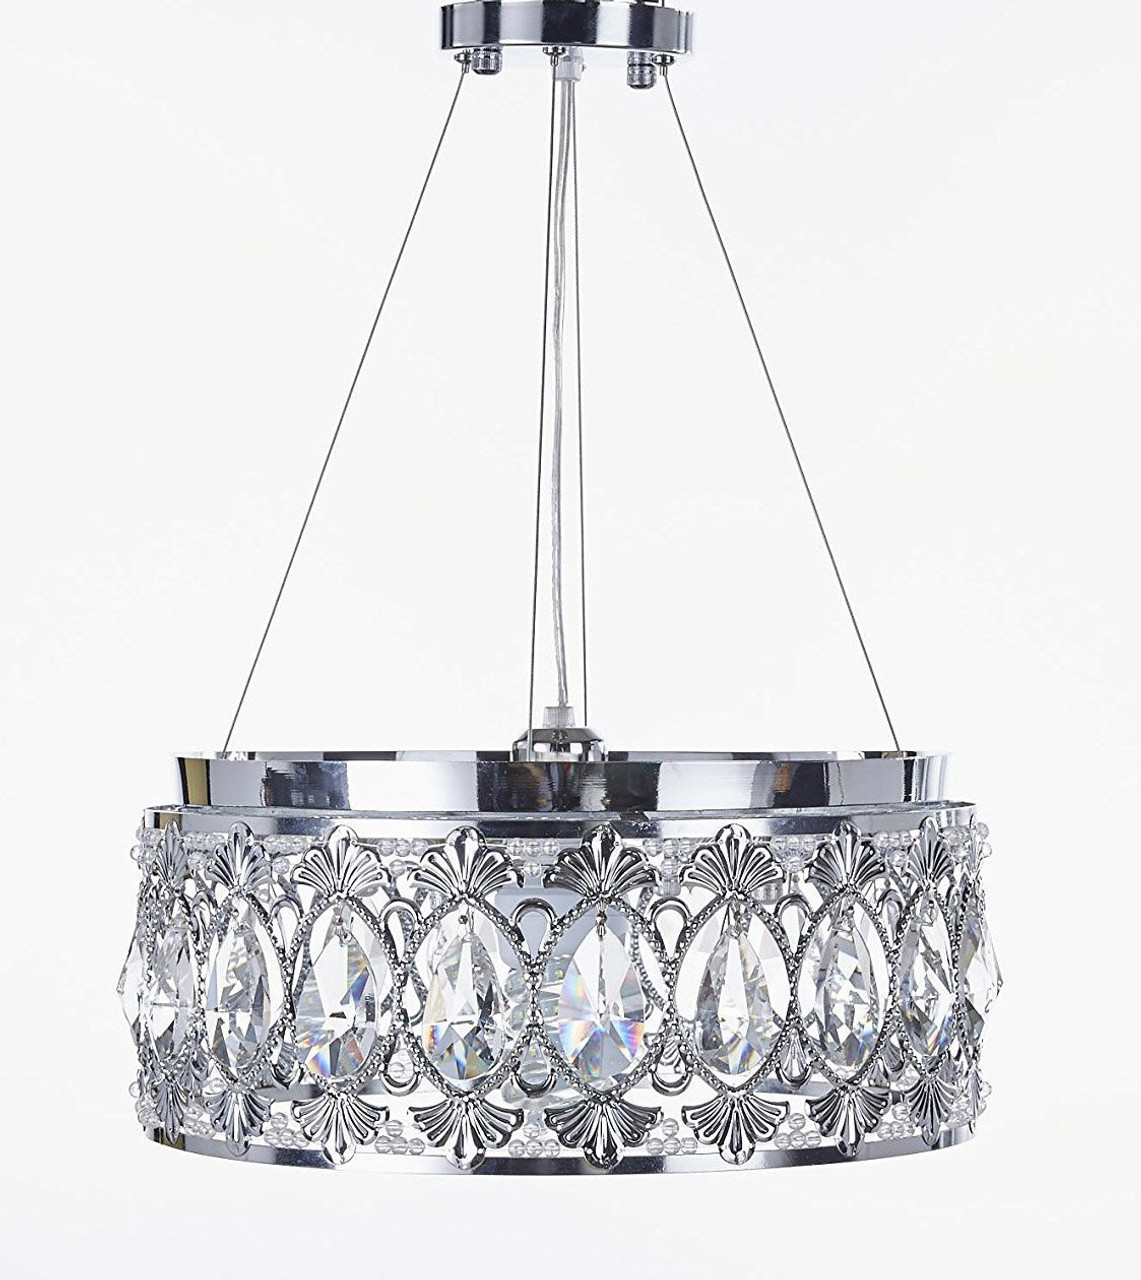 f chandelier large light furniture sale good lighting in midcentury for palwa glass crystal lights brass master condition chandeliers id pendant bremen